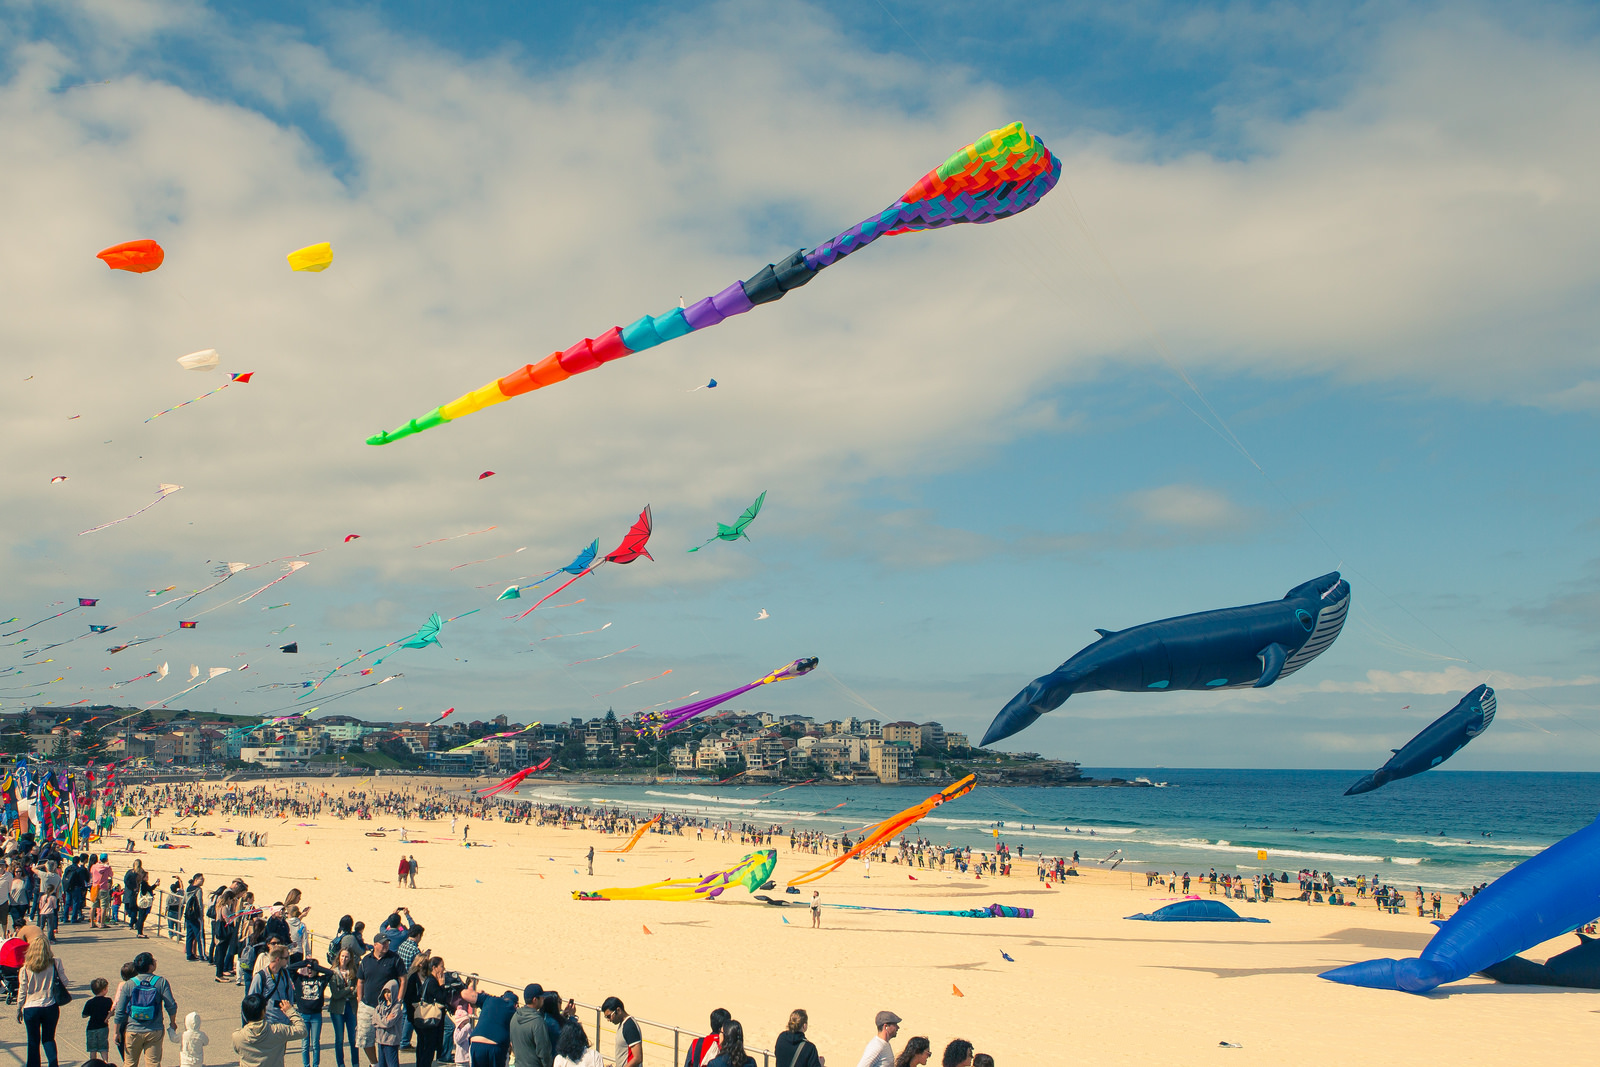 Festival of the Winds at Bondi, Sydney